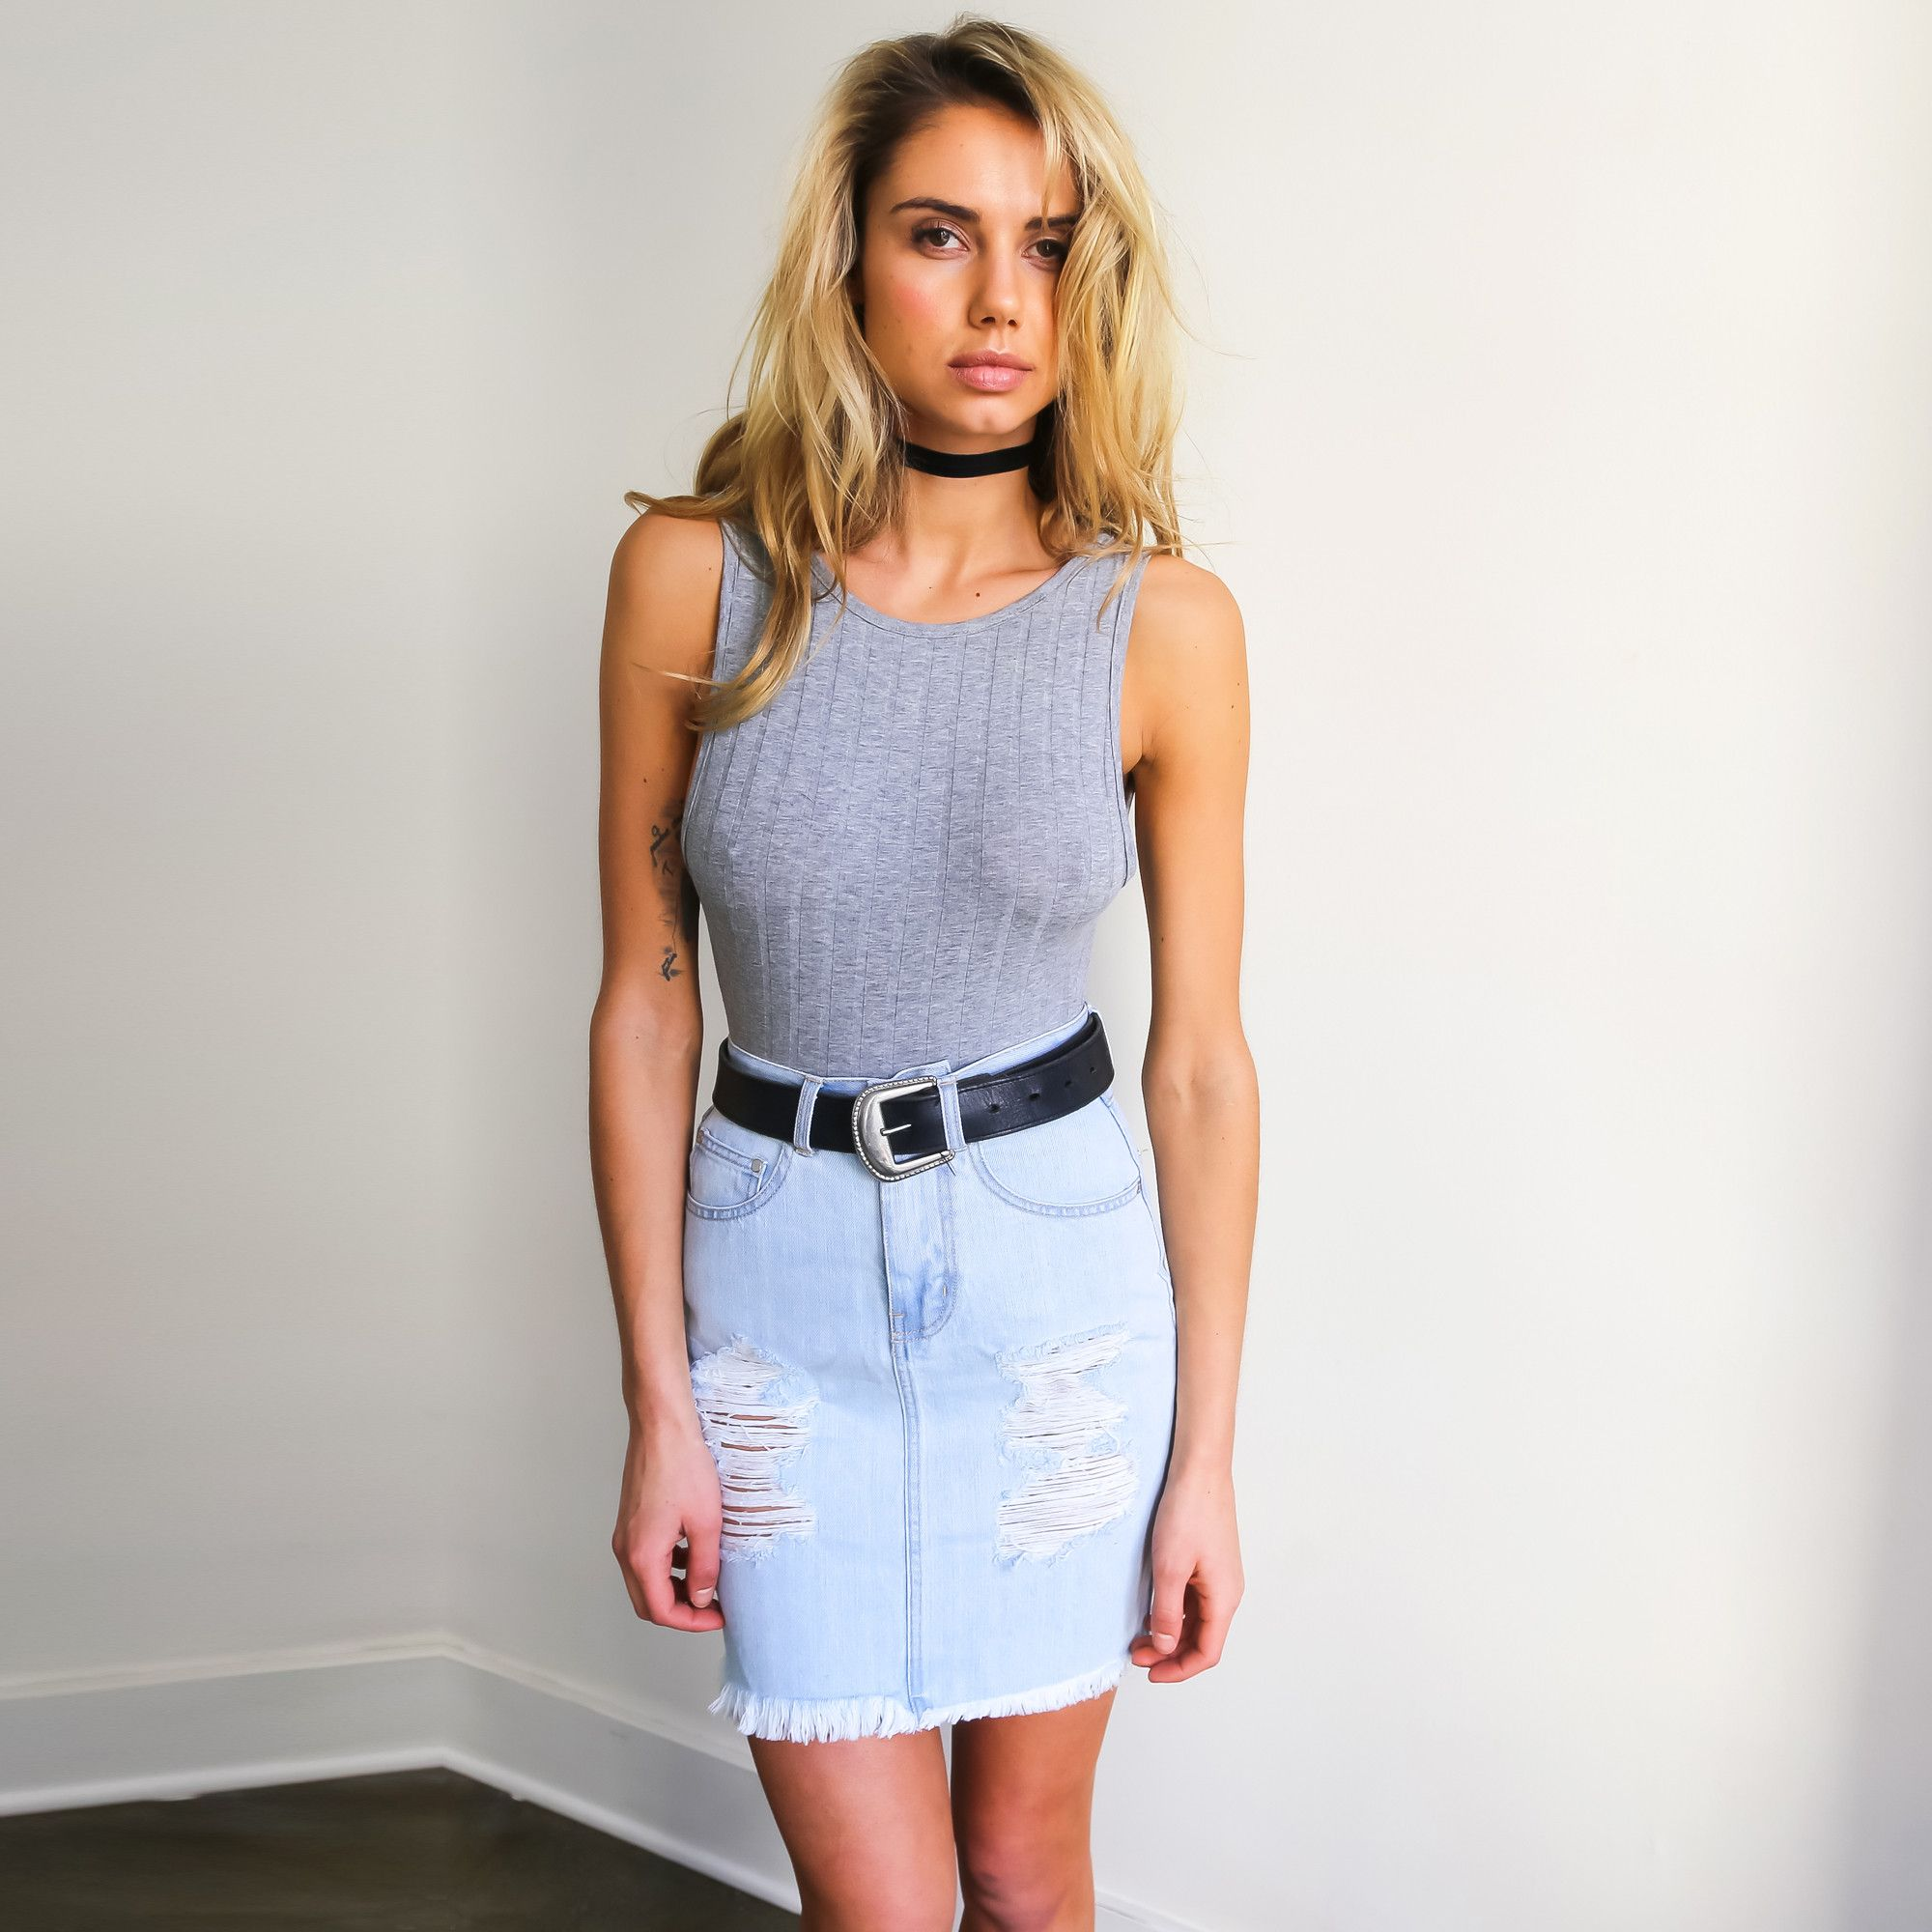 Sahara Ray* | fashion women